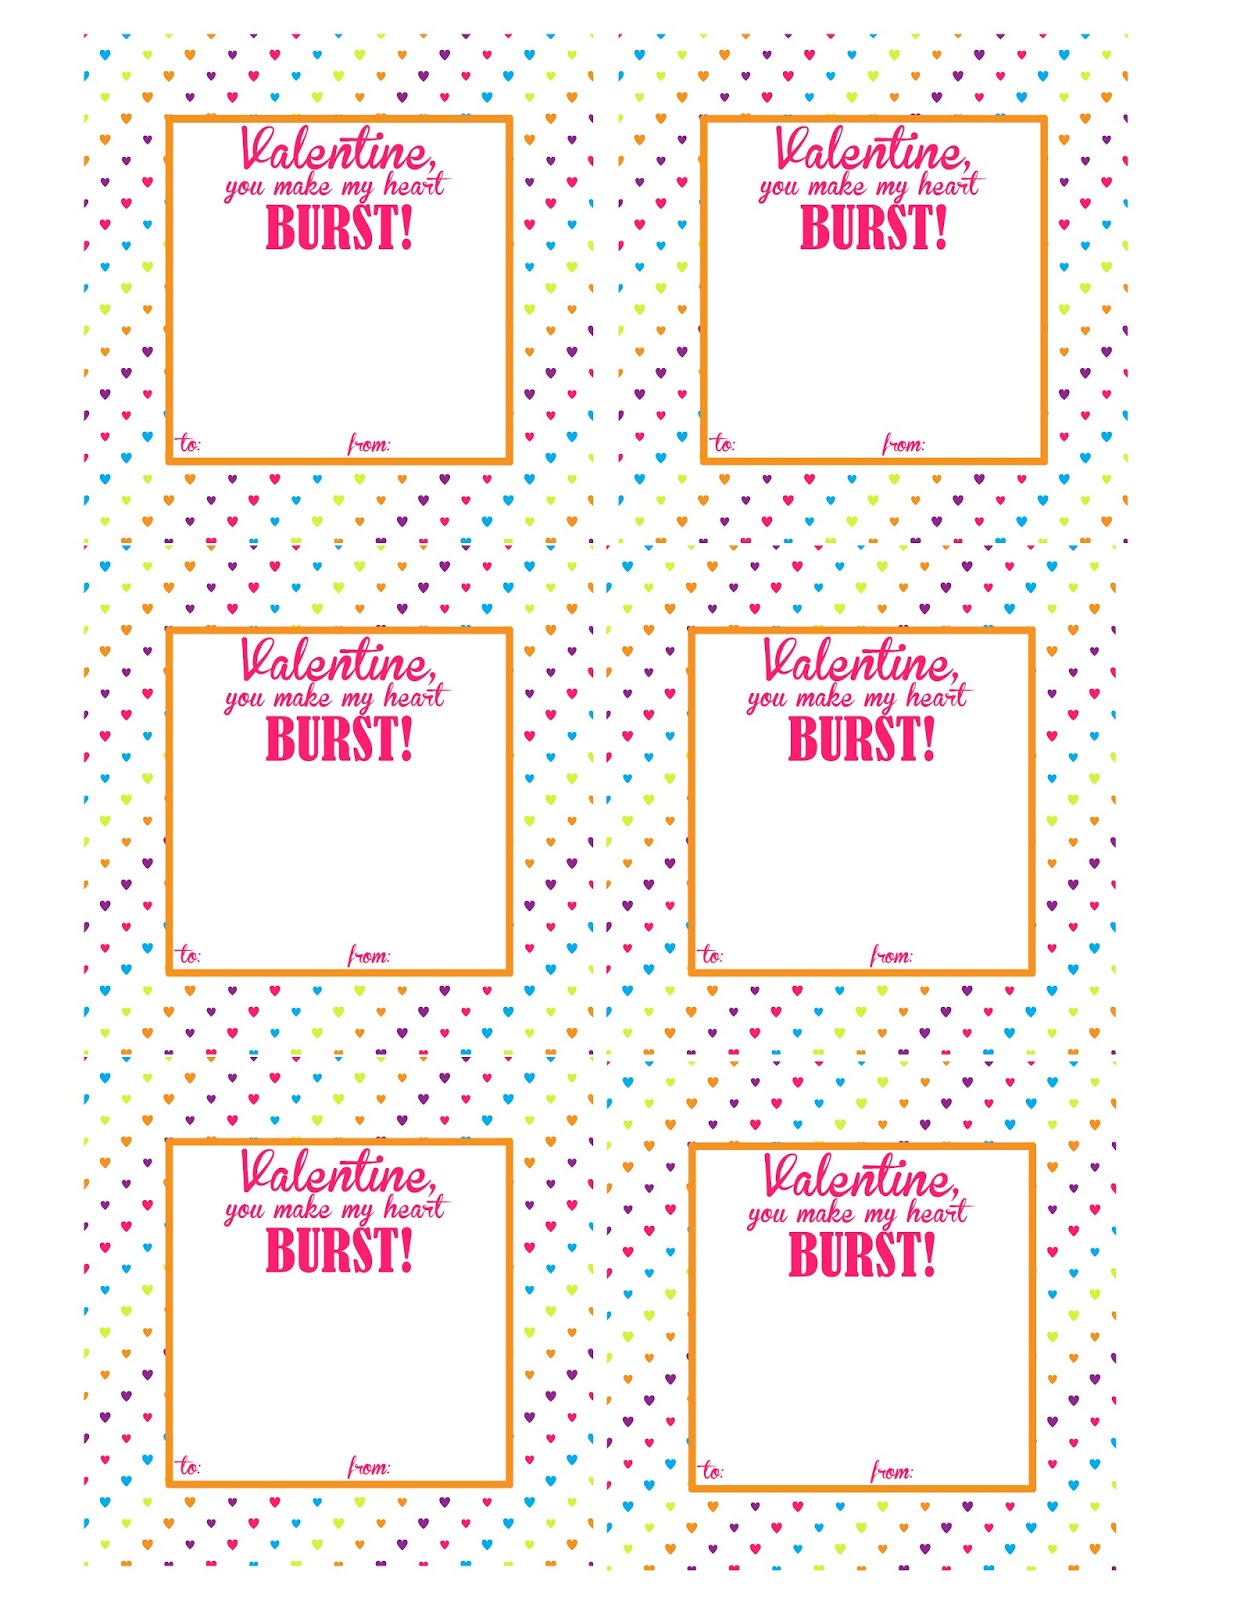 It's just a picture of Crafty Starburst Valentine Printable